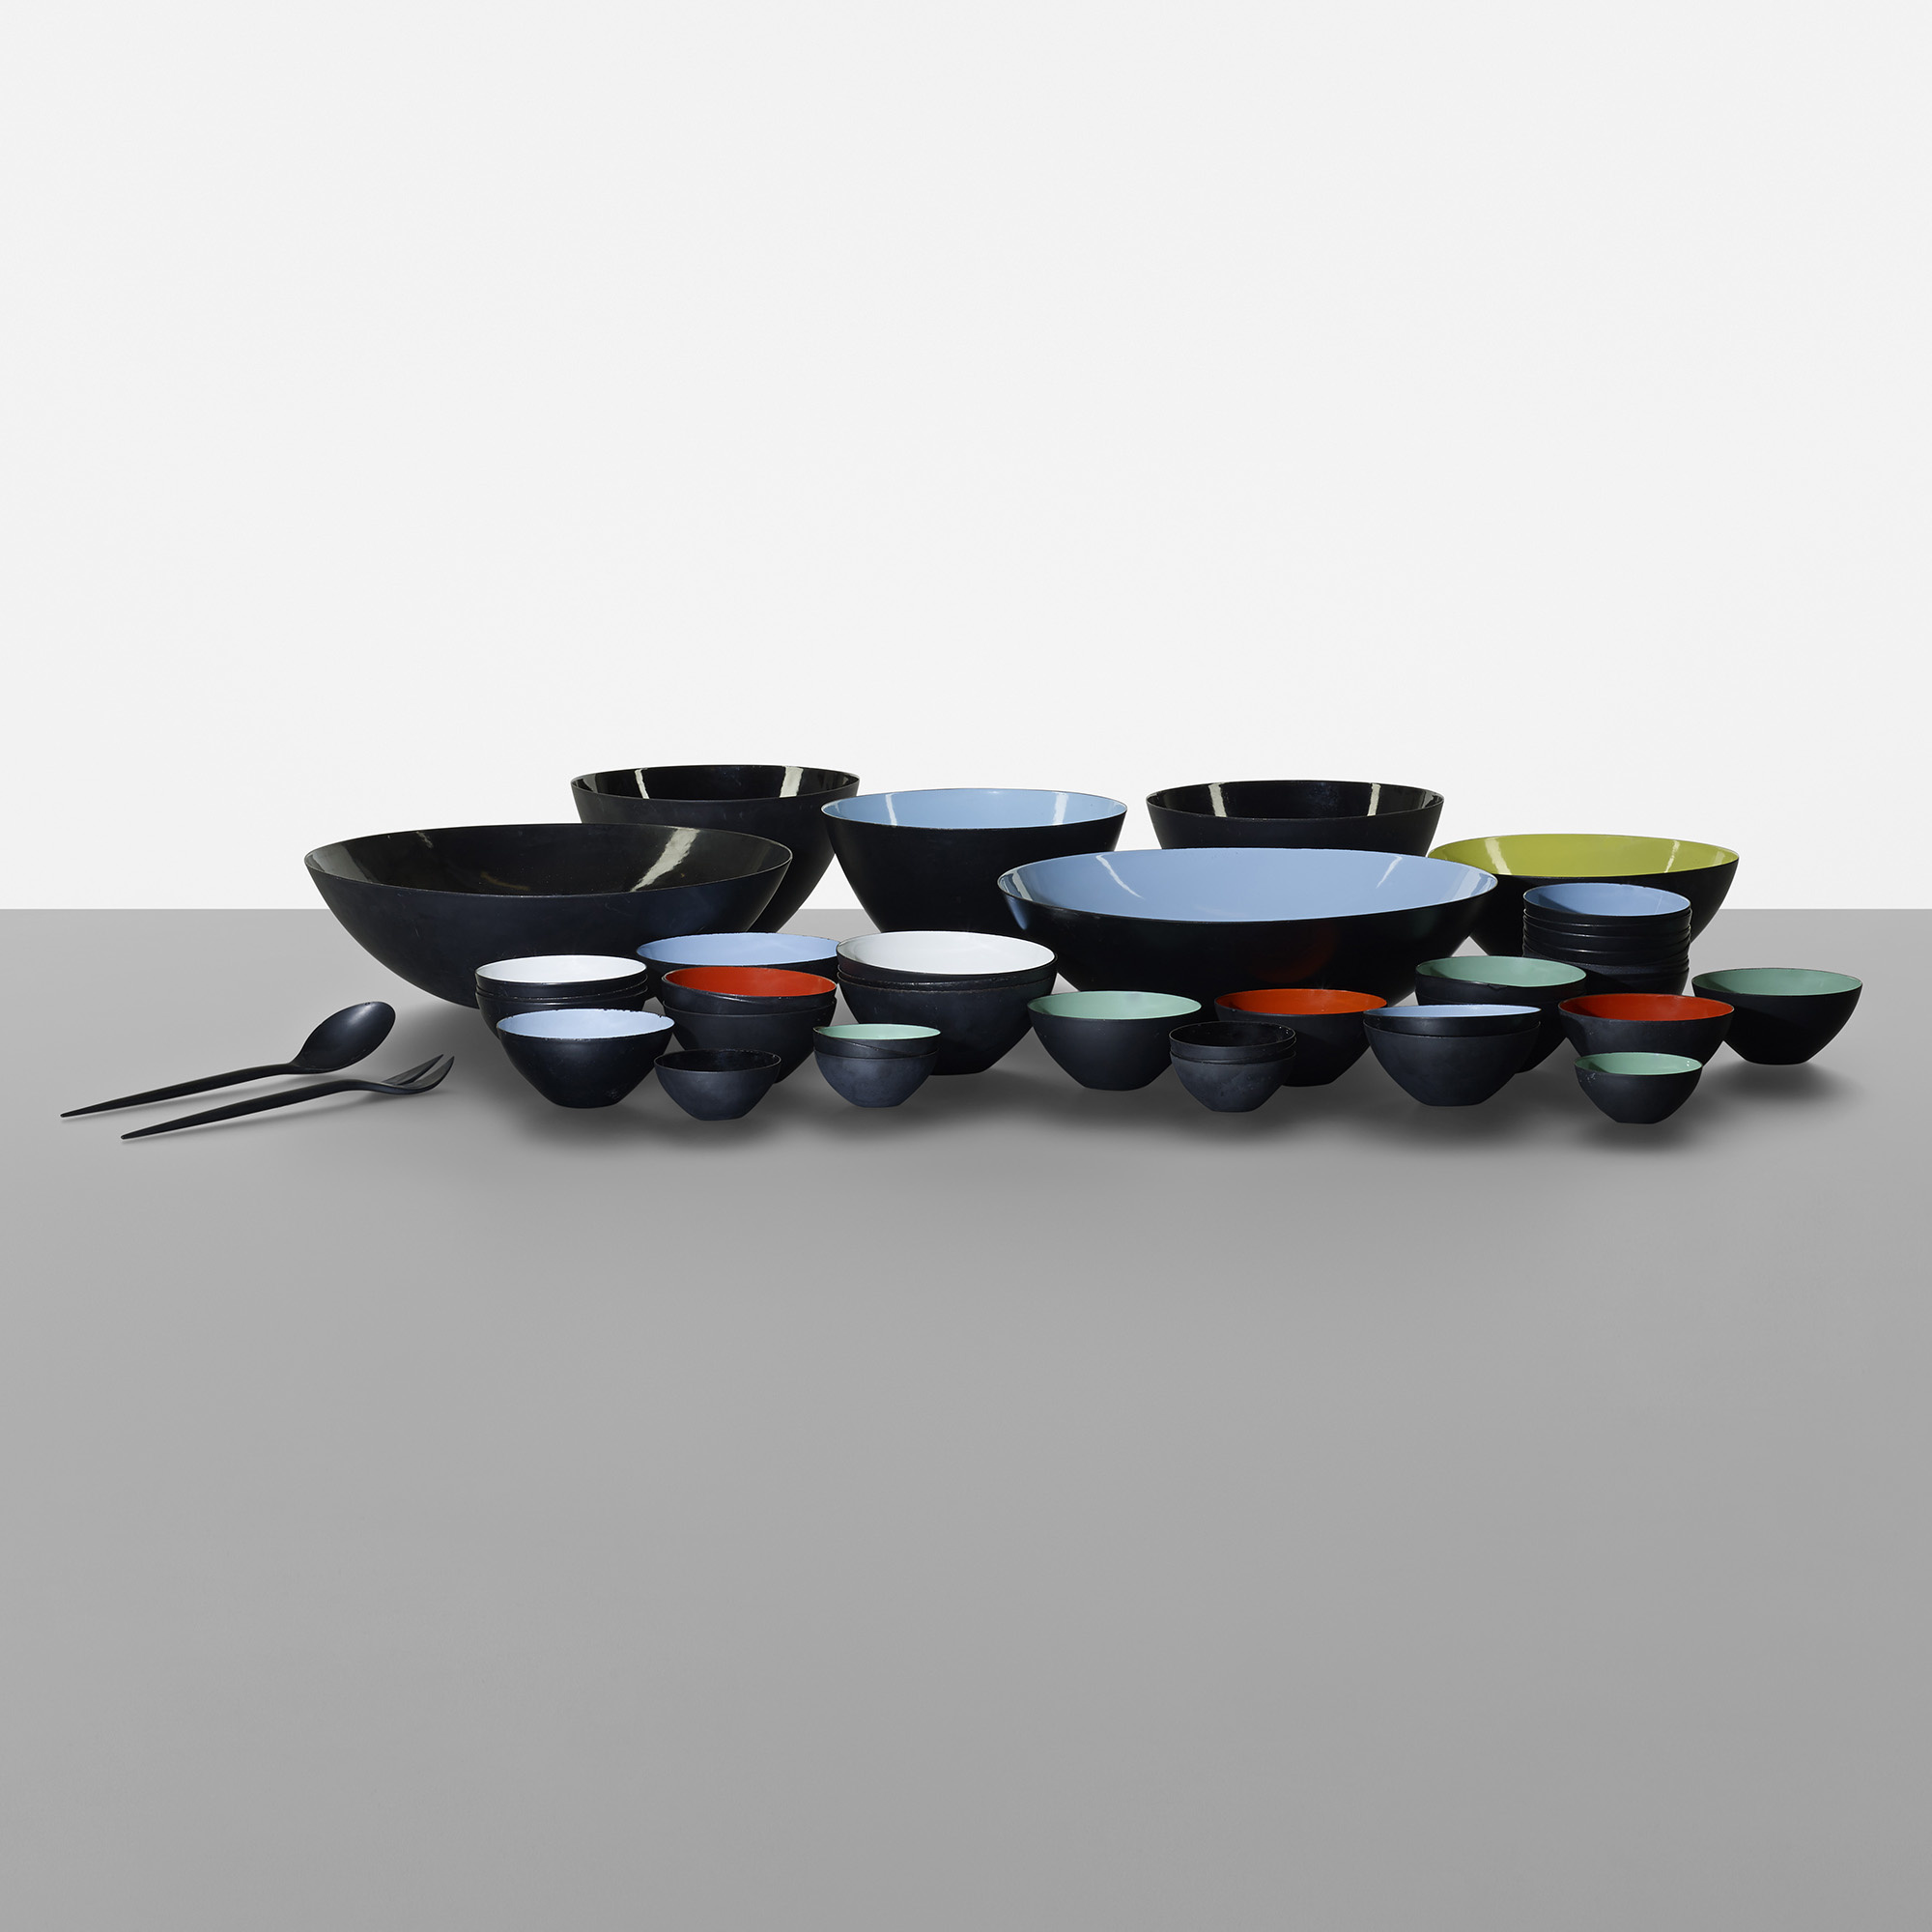 155: Herbert Krenchel / set of forty-three Krenit bowls with two serving utensils (1 of 4)